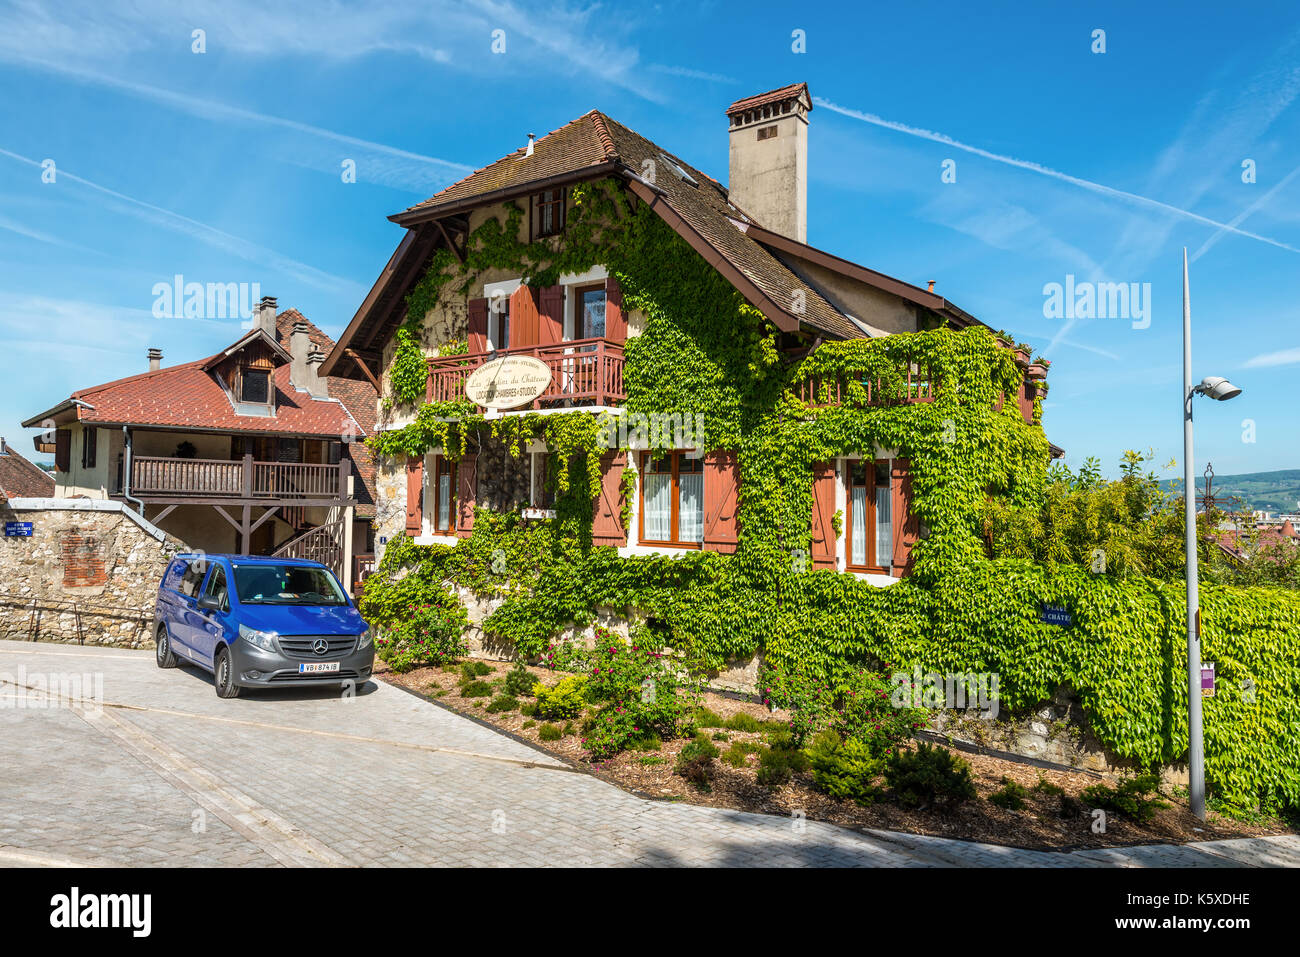 rent car france stock photos rent car france stock images alamy. Black Bedroom Furniture Sets. Home Design Ideas